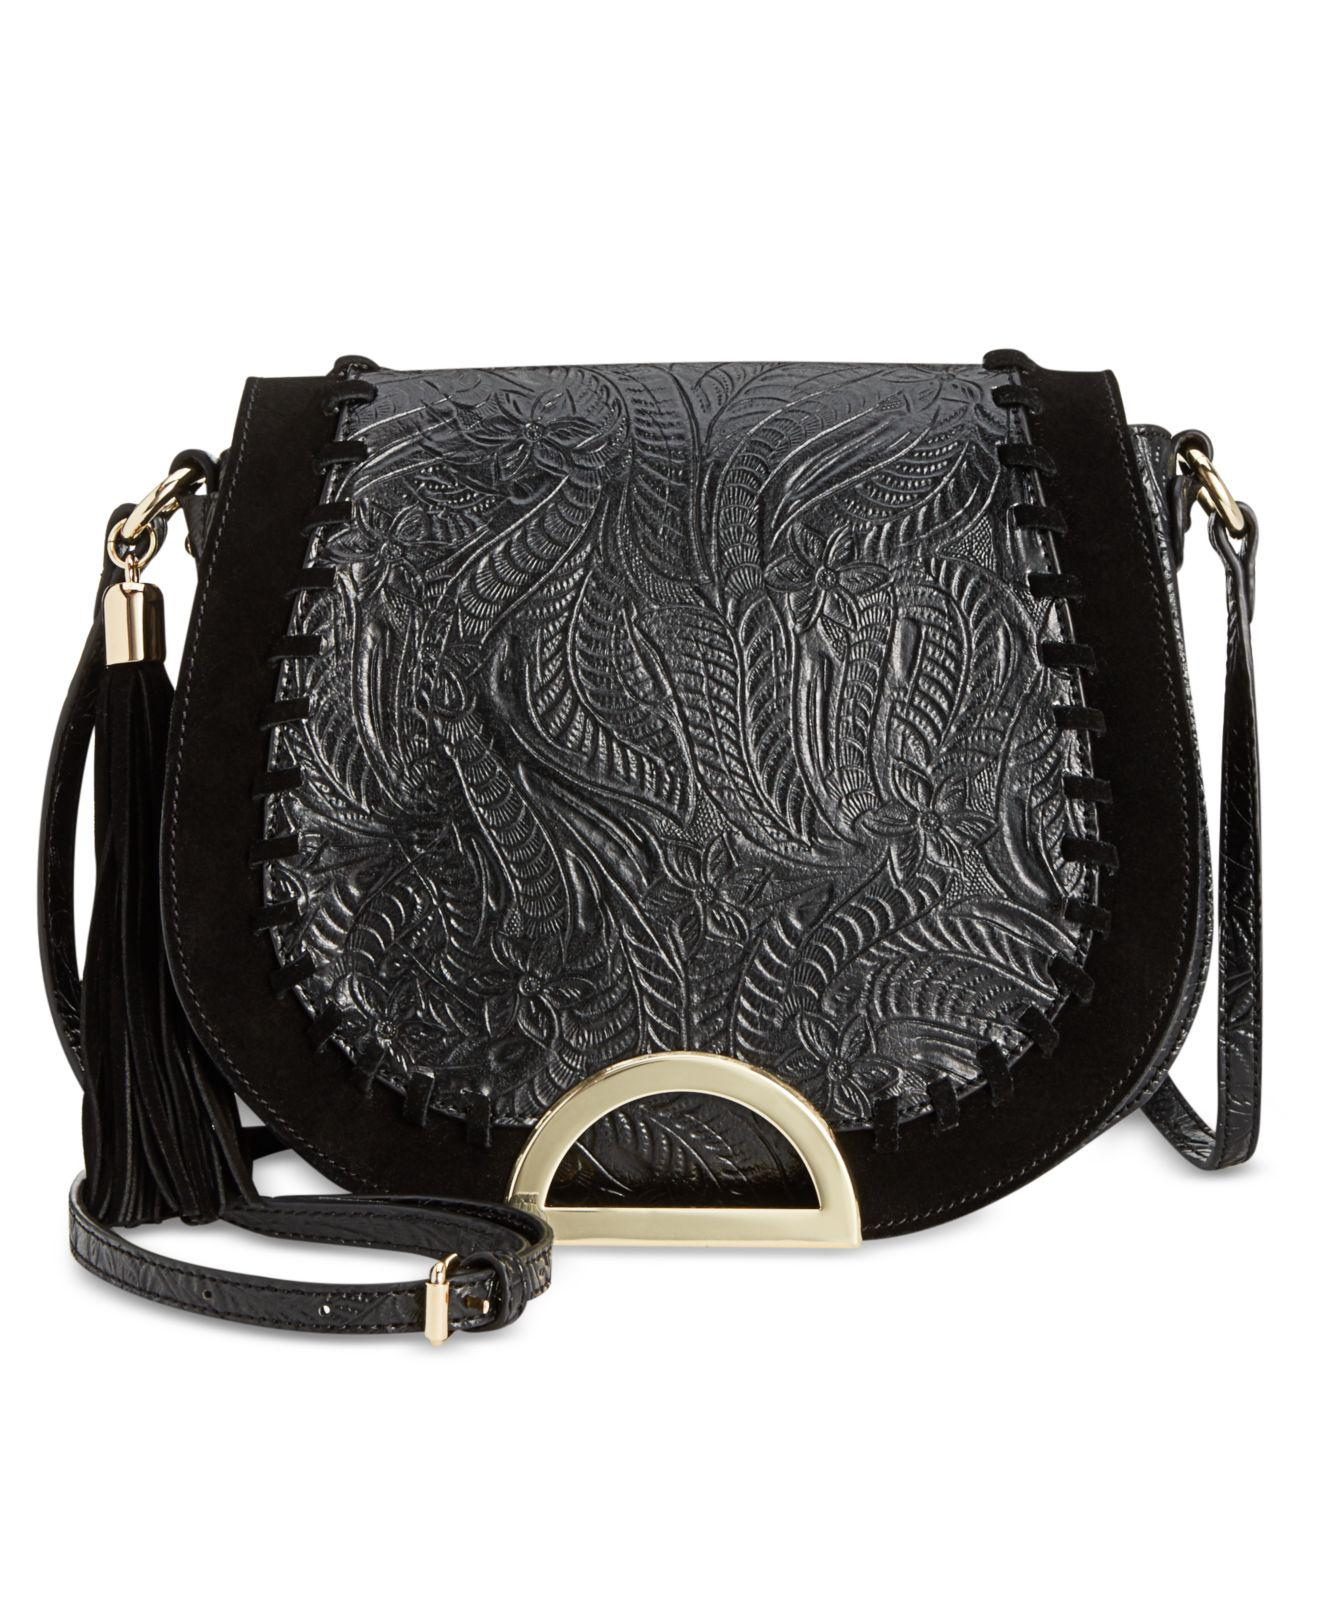 84e277c9d491 Lyst - INC International Concepts Maraa Embossed Small Saddle Bag in ...